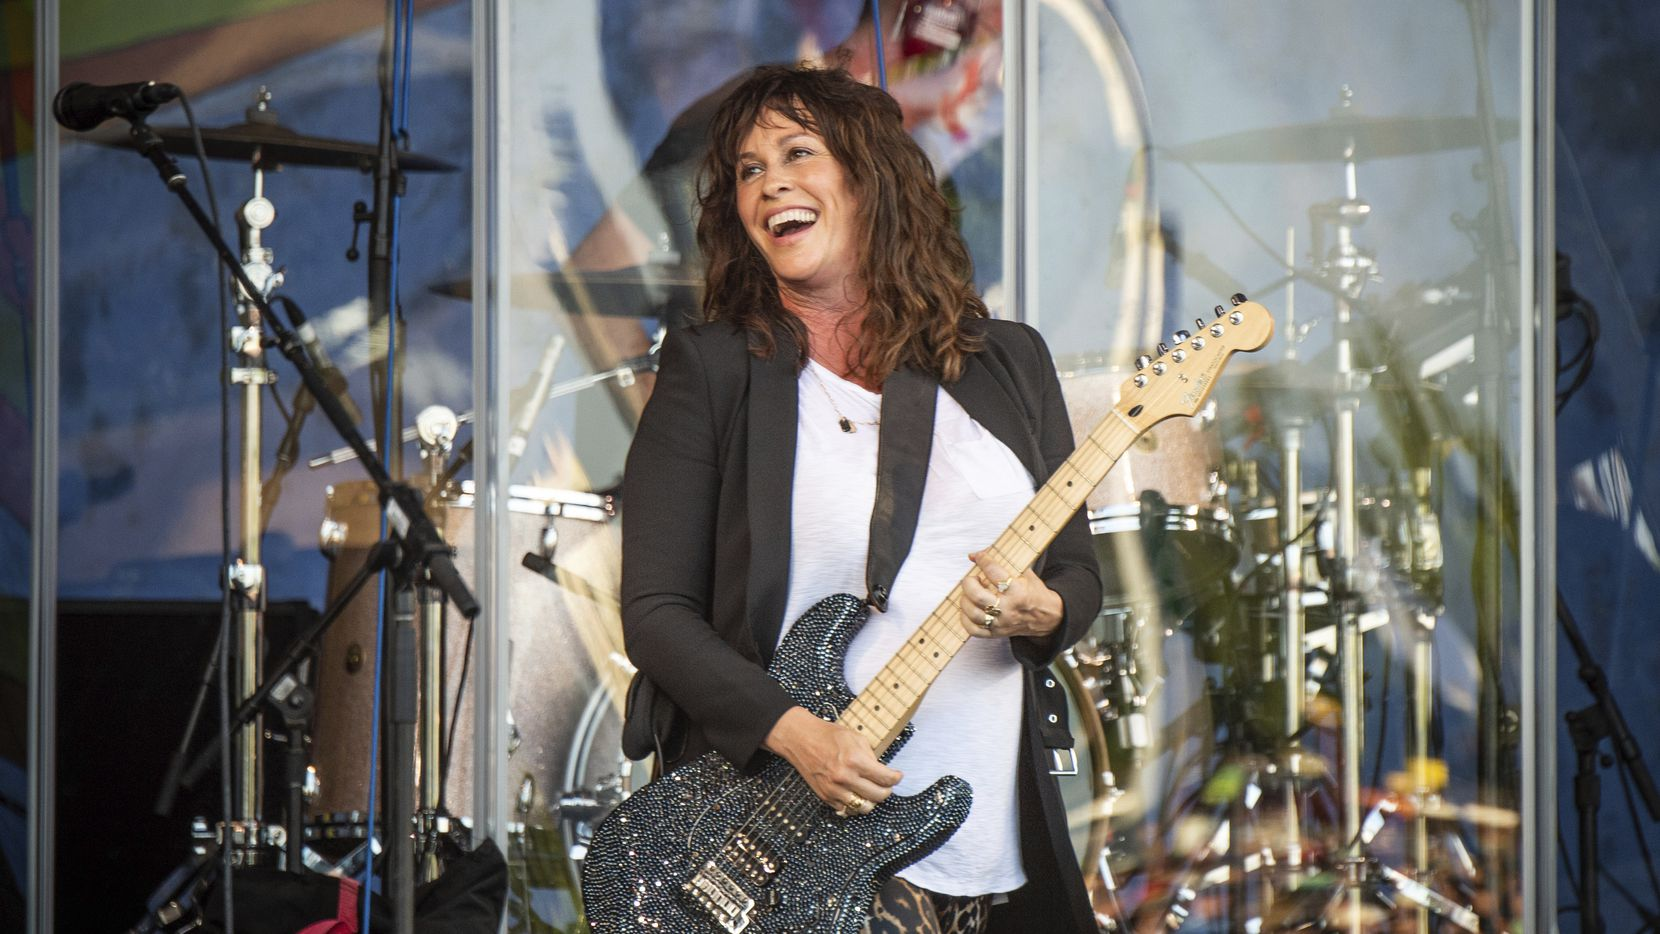 Alanis Morissette performs at the New Orleans Jazz and Heritage Festival on Thursday, April 25, 2019, in New Orleans.